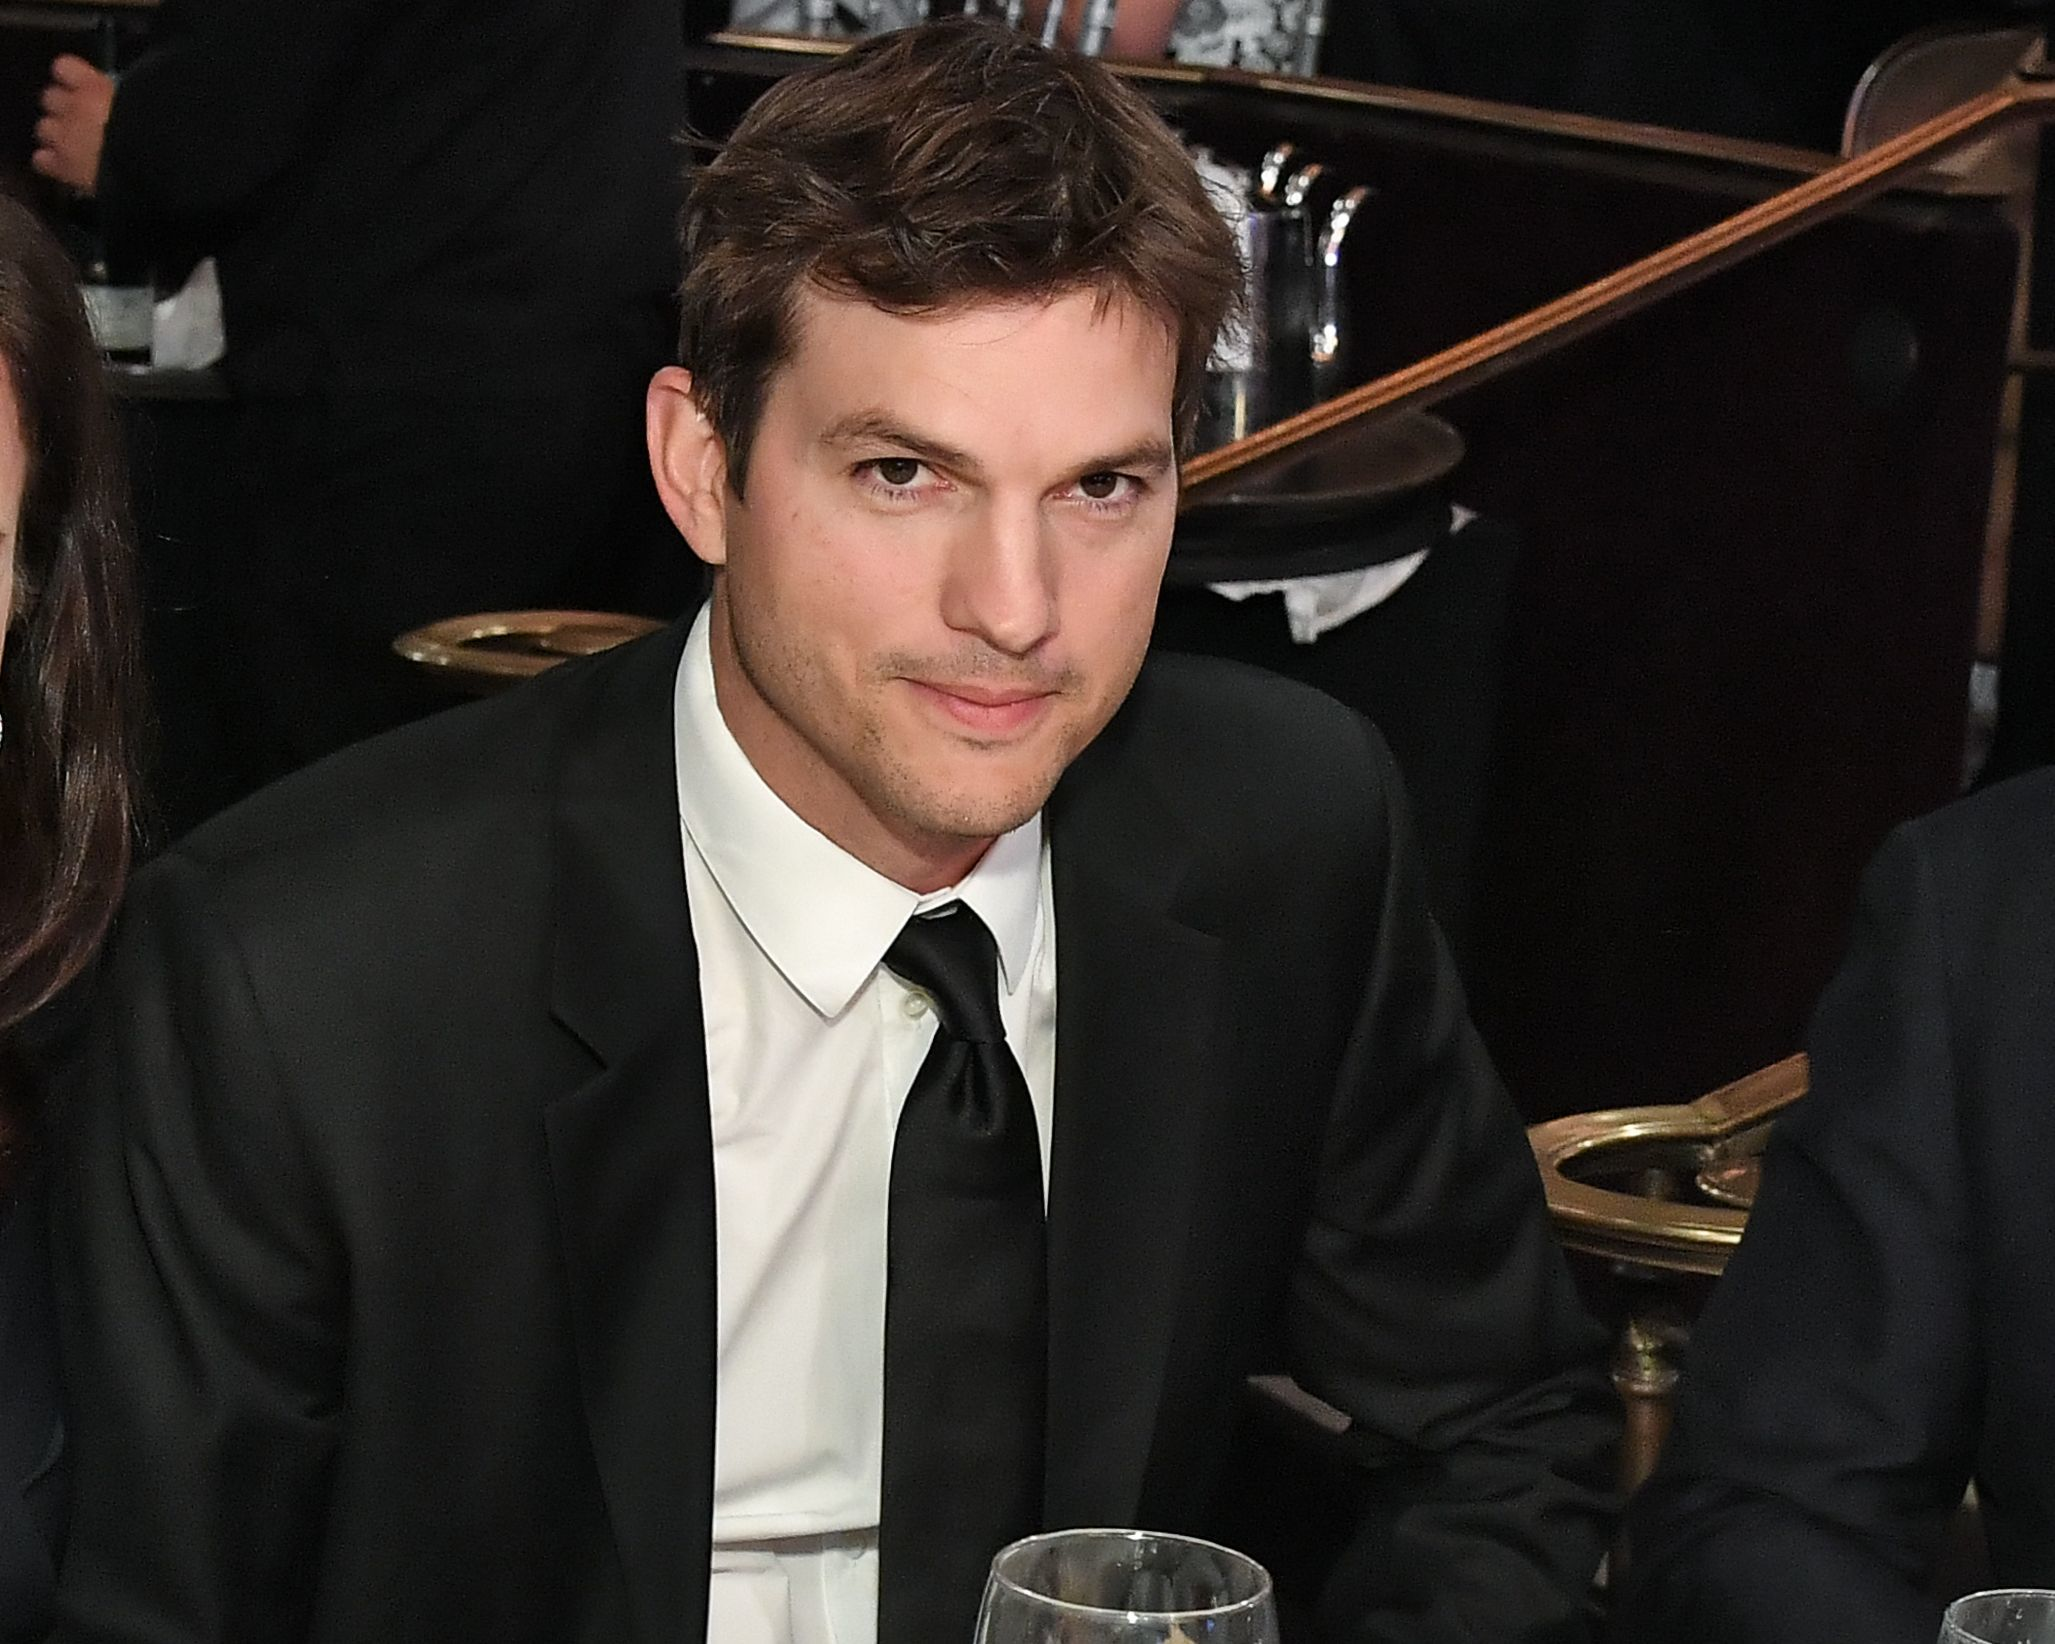 Ashton Kutcher attends the Friends of the Israel Defense Forces Western Regional Gala in Los Angeles on Nov. 1, 2018.